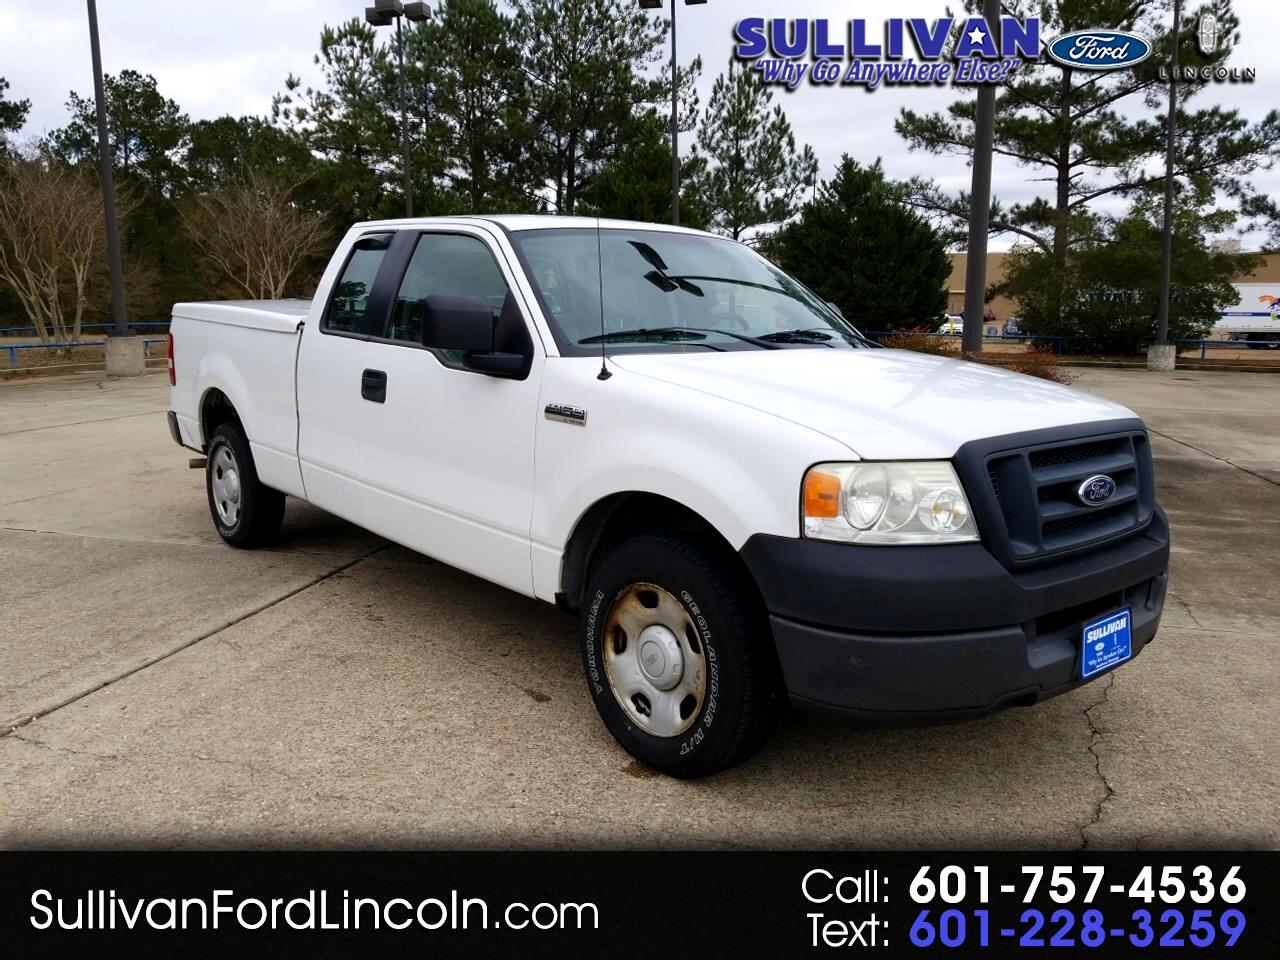 2005 Ford F-150 Supercab 139